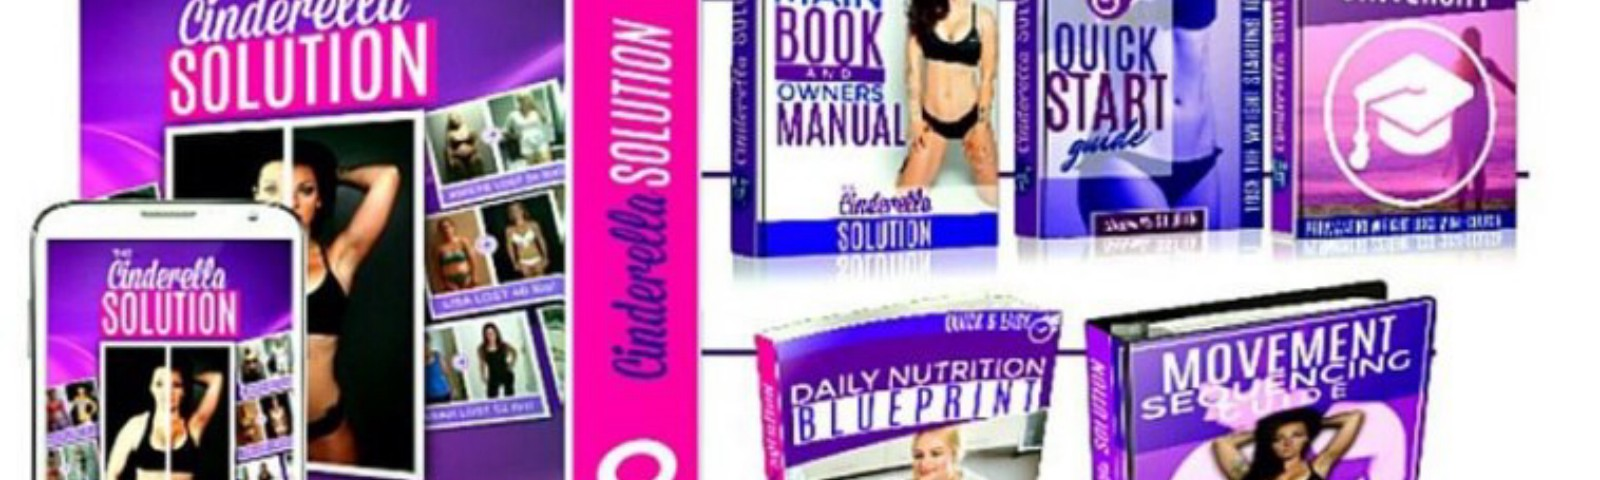 Cinderella Solution  Diet Exchange Offer